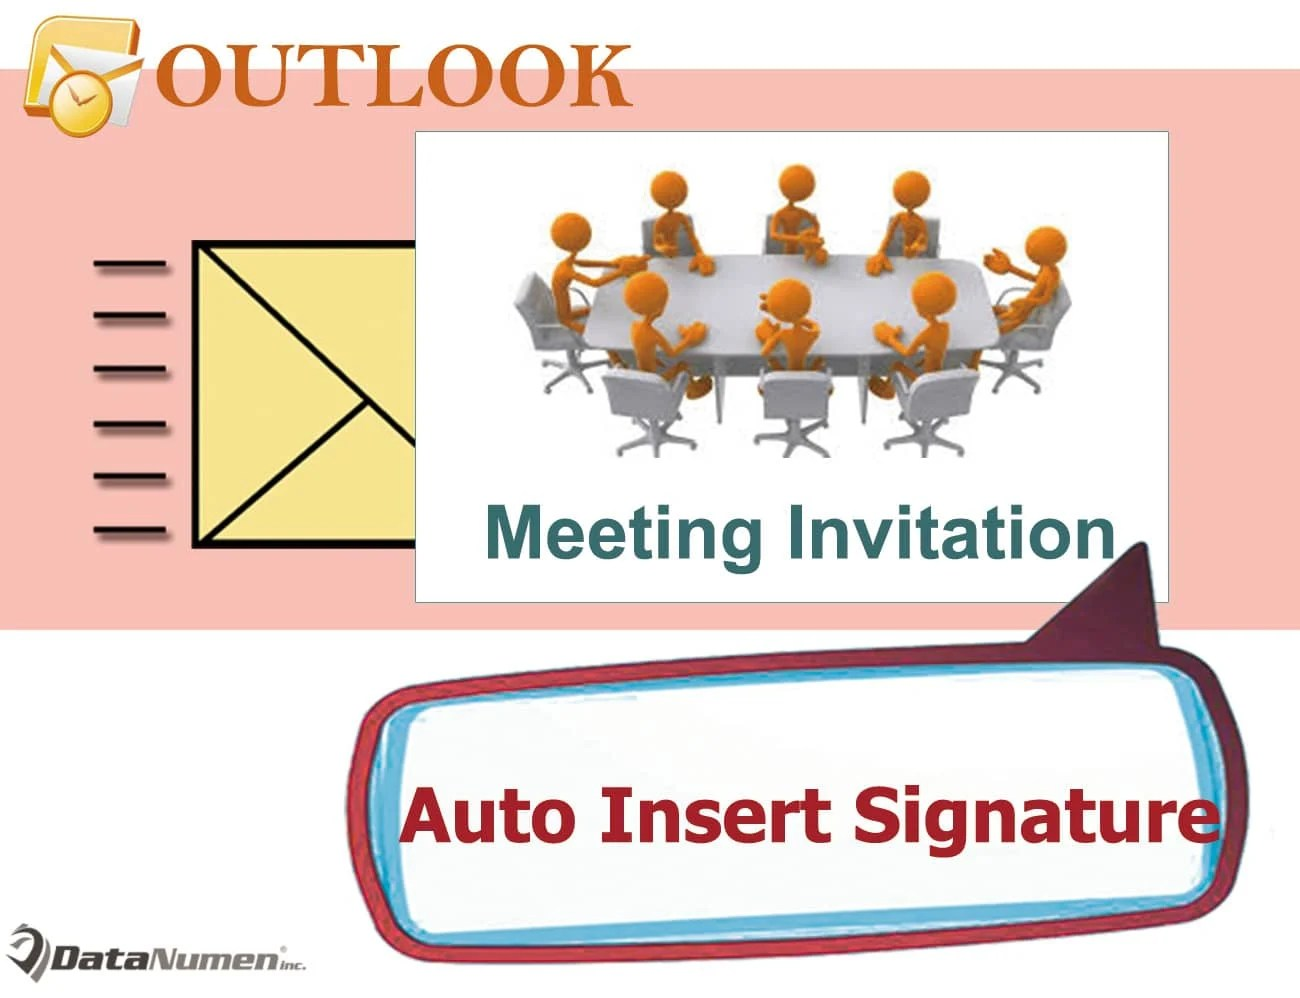 Auto Insert Signature to Meeting Invitations in Outlook